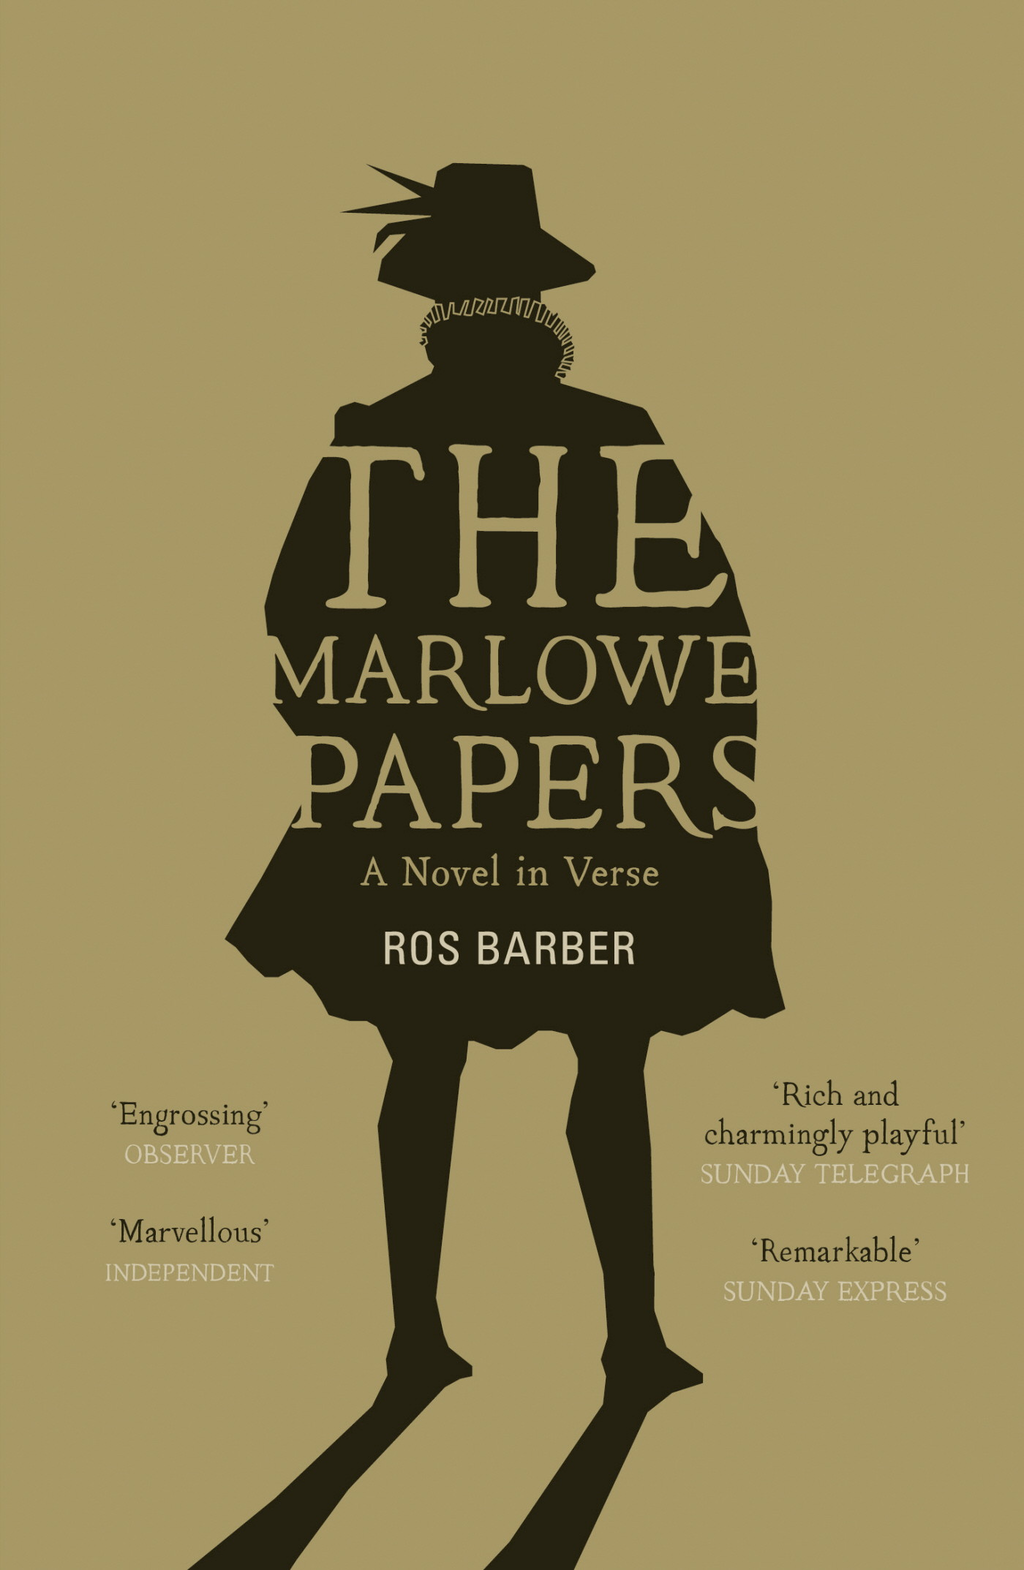 The Marlowe Papers